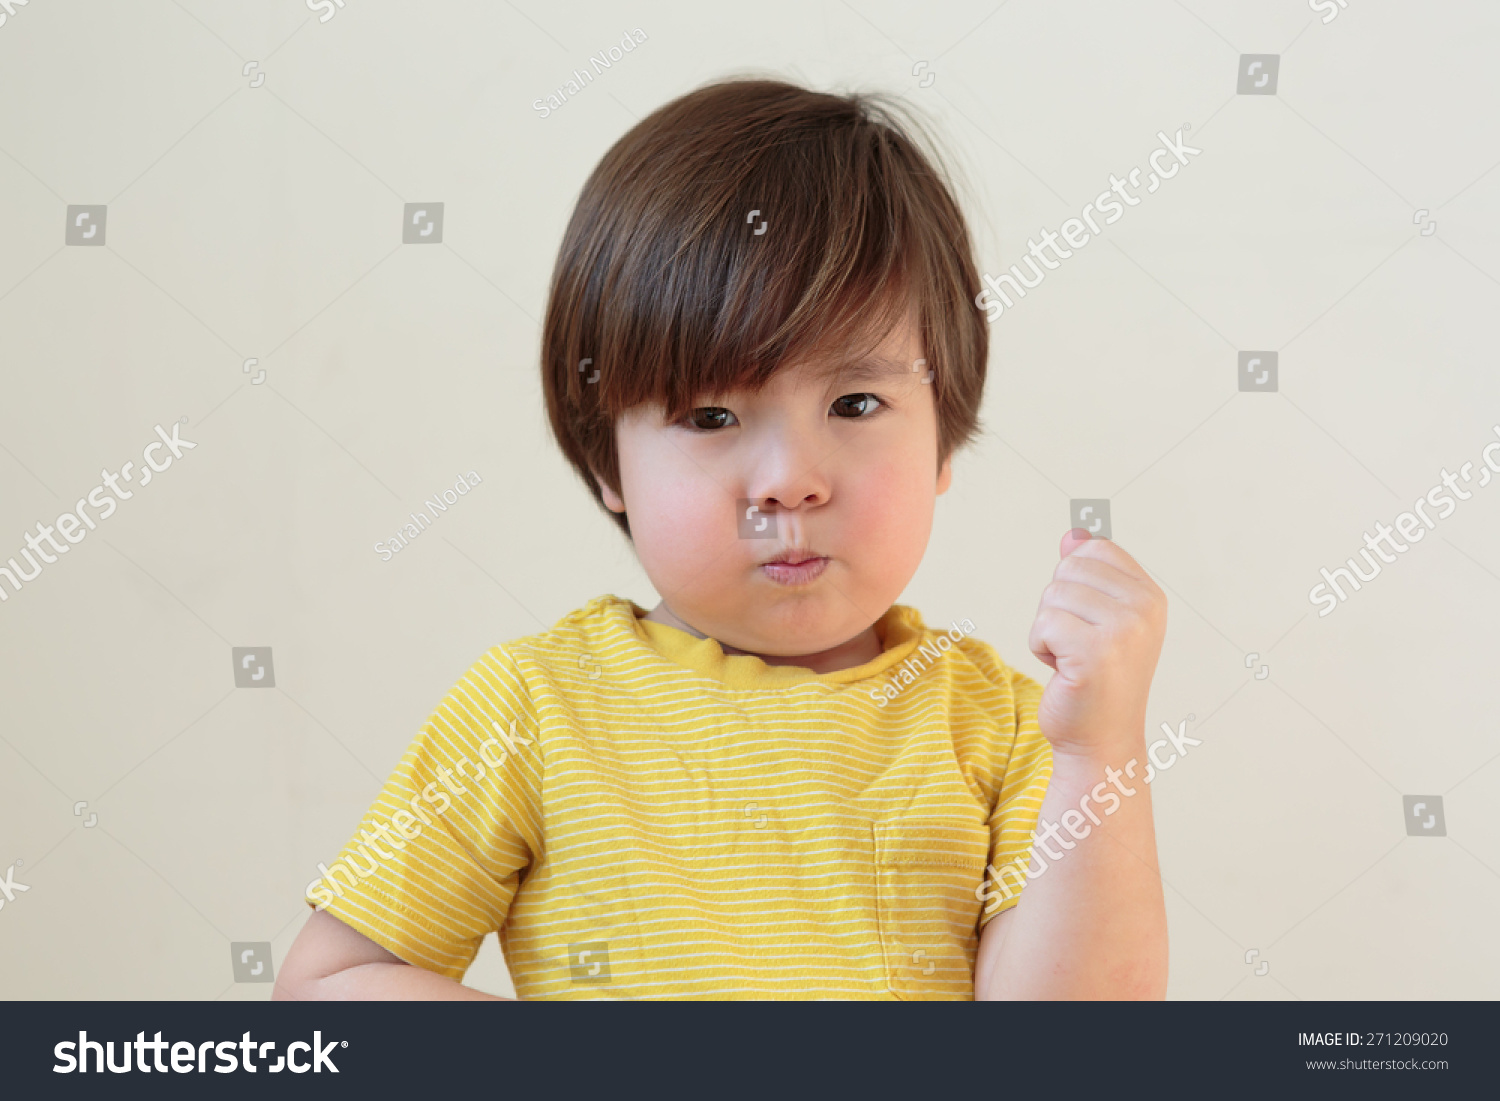 Tough toddler shaking fist. Terrible two year old. Small child punching,  hitting with pout on his face. Little boy with a big attitude. Moody kid.